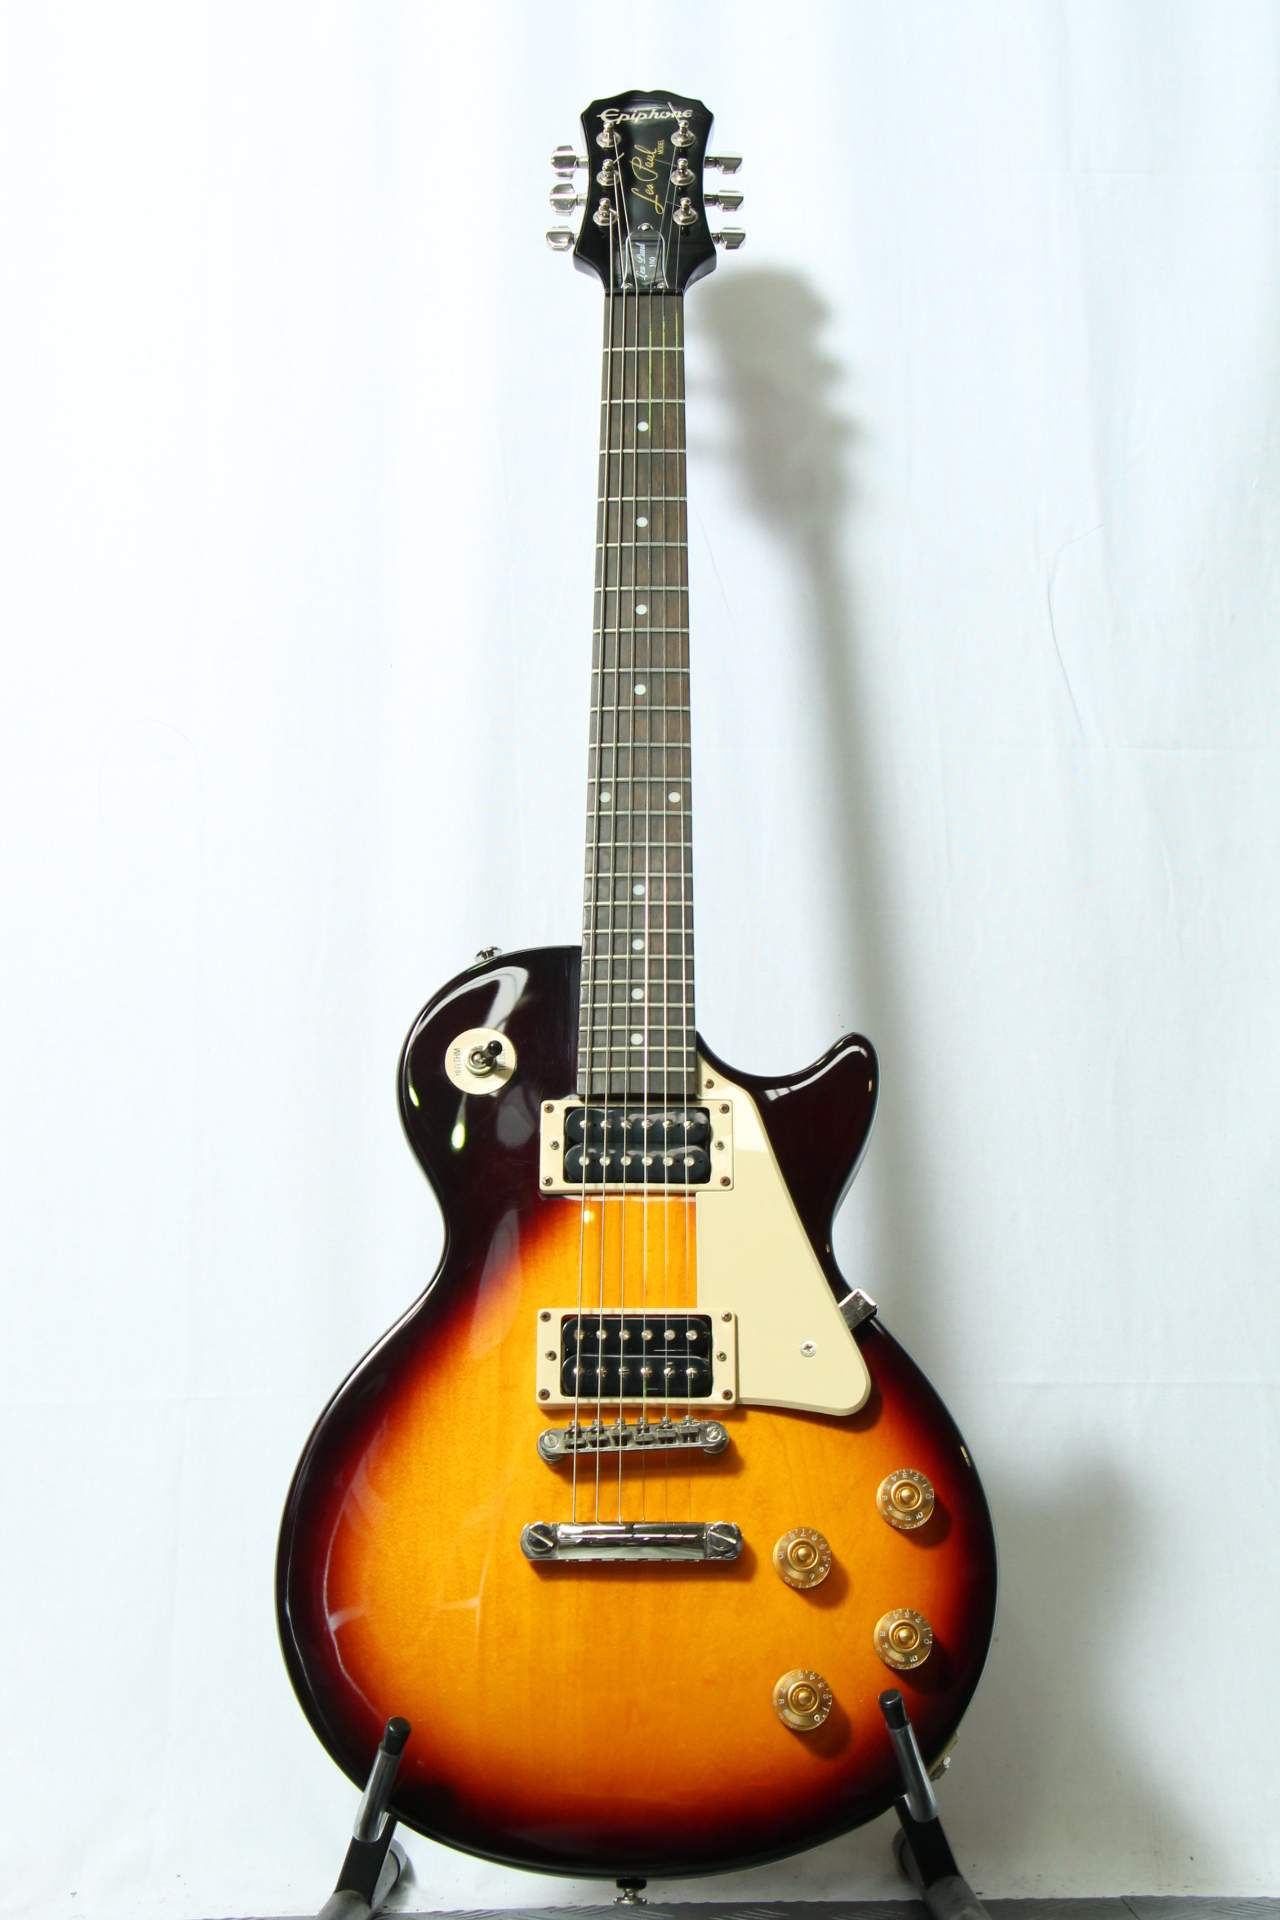 epiphone les paul lp 100 rent from 13 month musicorp australia. Black Bedroom Furniture Sets. Home Design Ideas